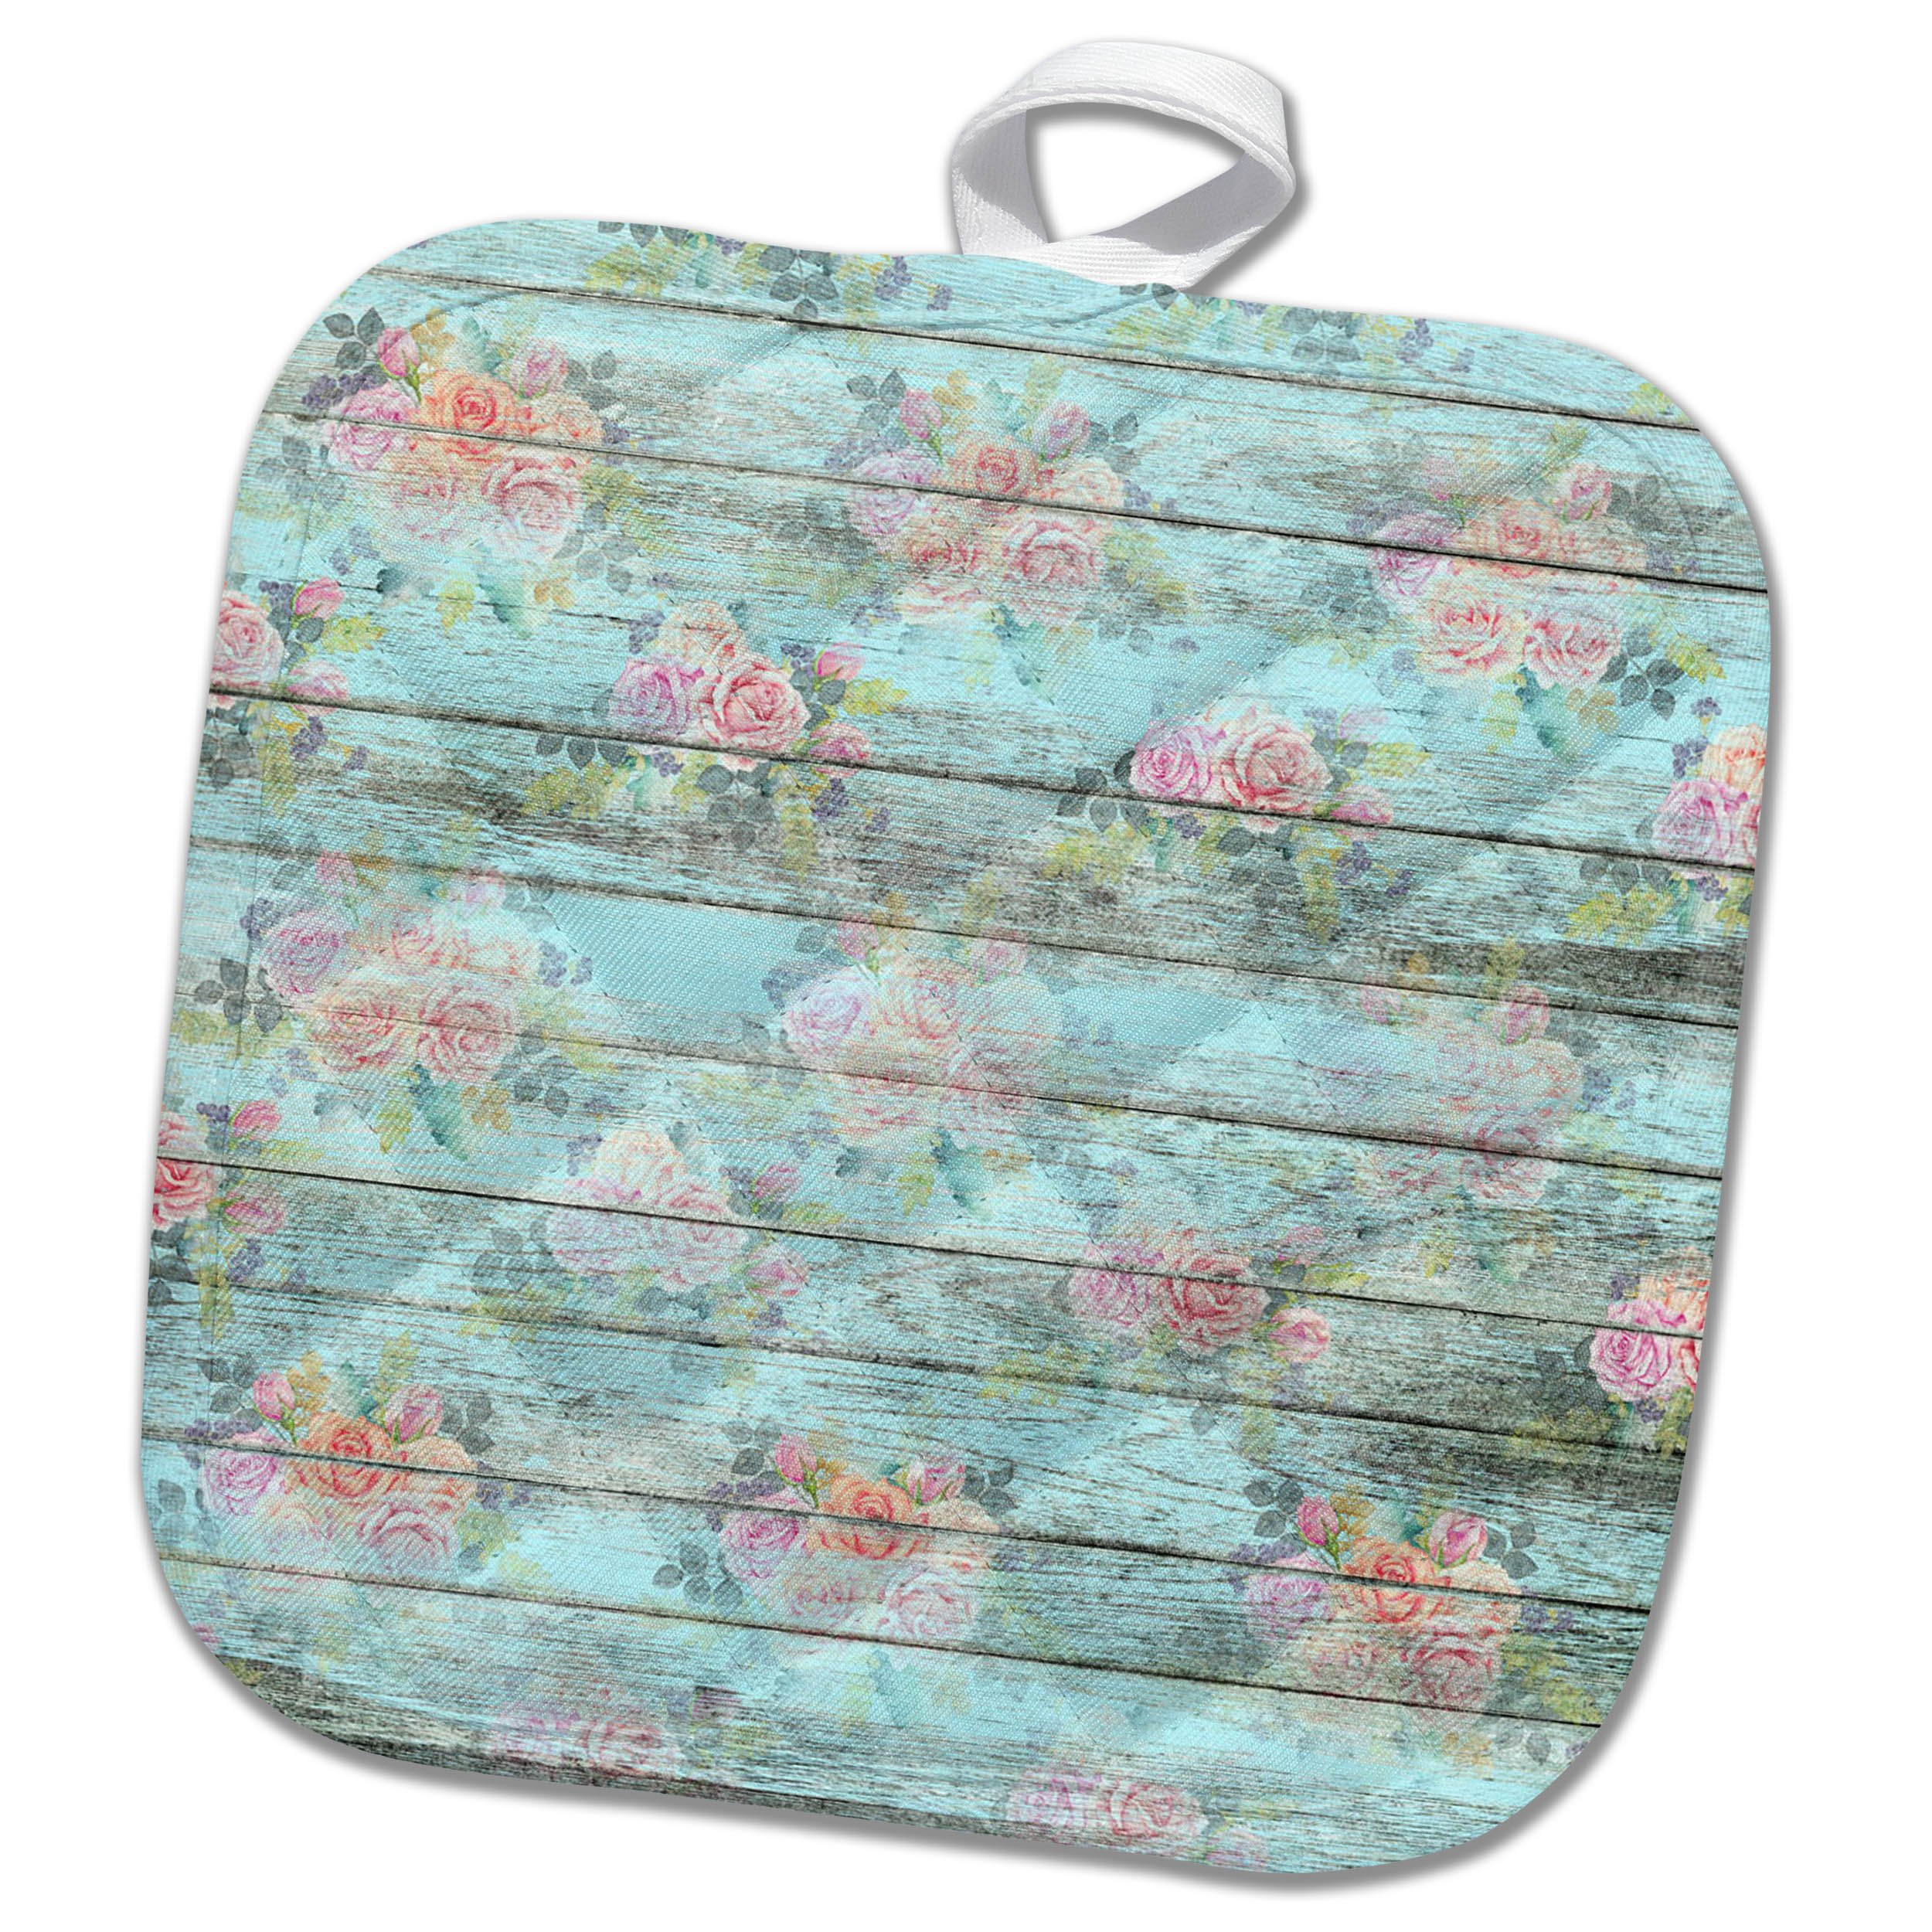 3dRose Anne Marie Baugh - Patterns - Chic Pink Roses On A Printed Faux Aqua Wood Pattern - 8x8 Potholder (phl_283308_1)